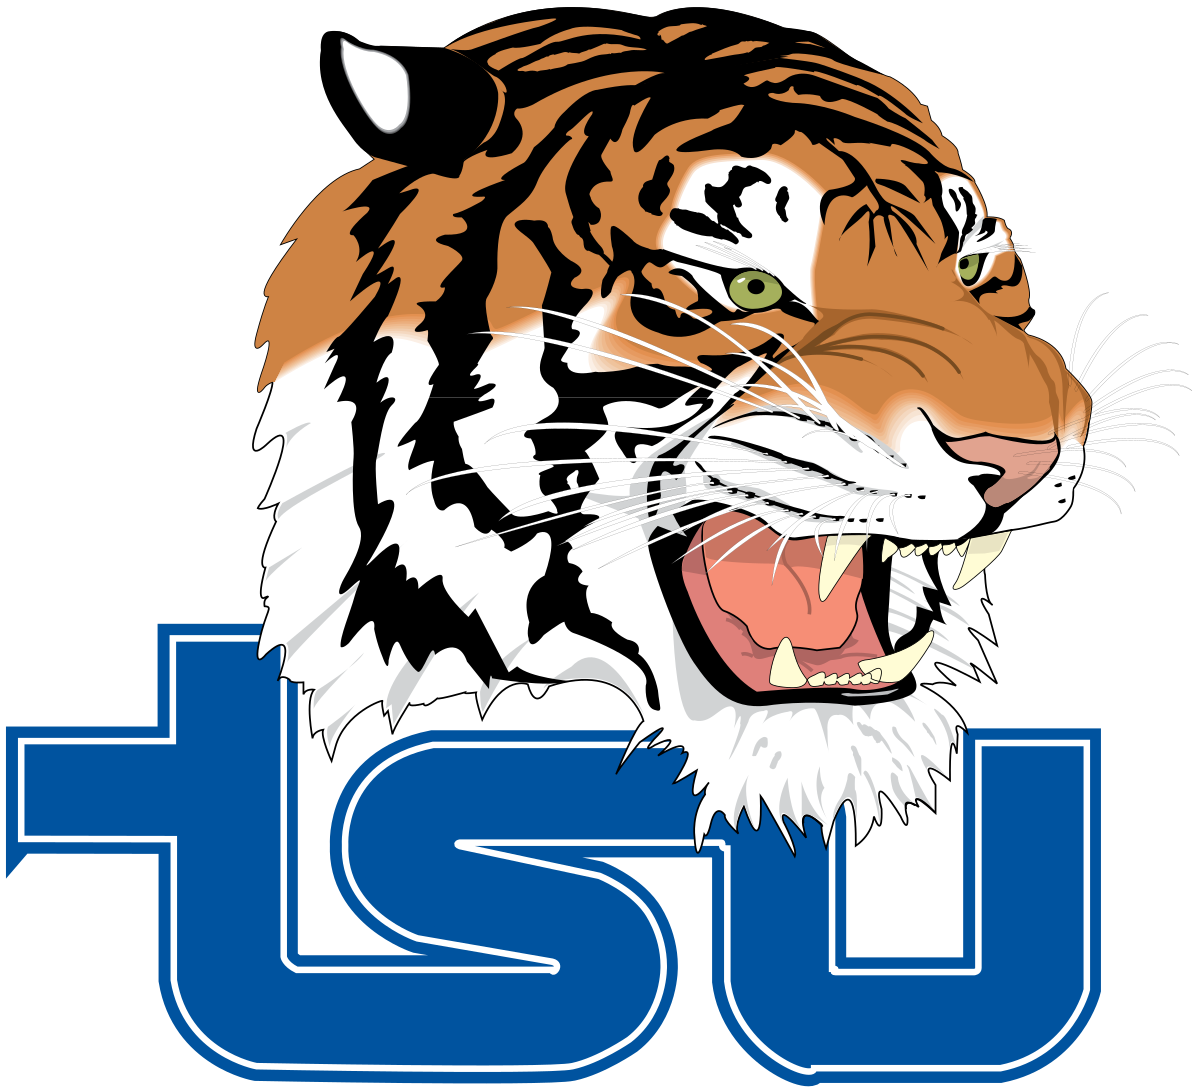 Girl tiger basketball clipart image library Tennessee State Tigers and Lady Tigers - Wikipedia image library